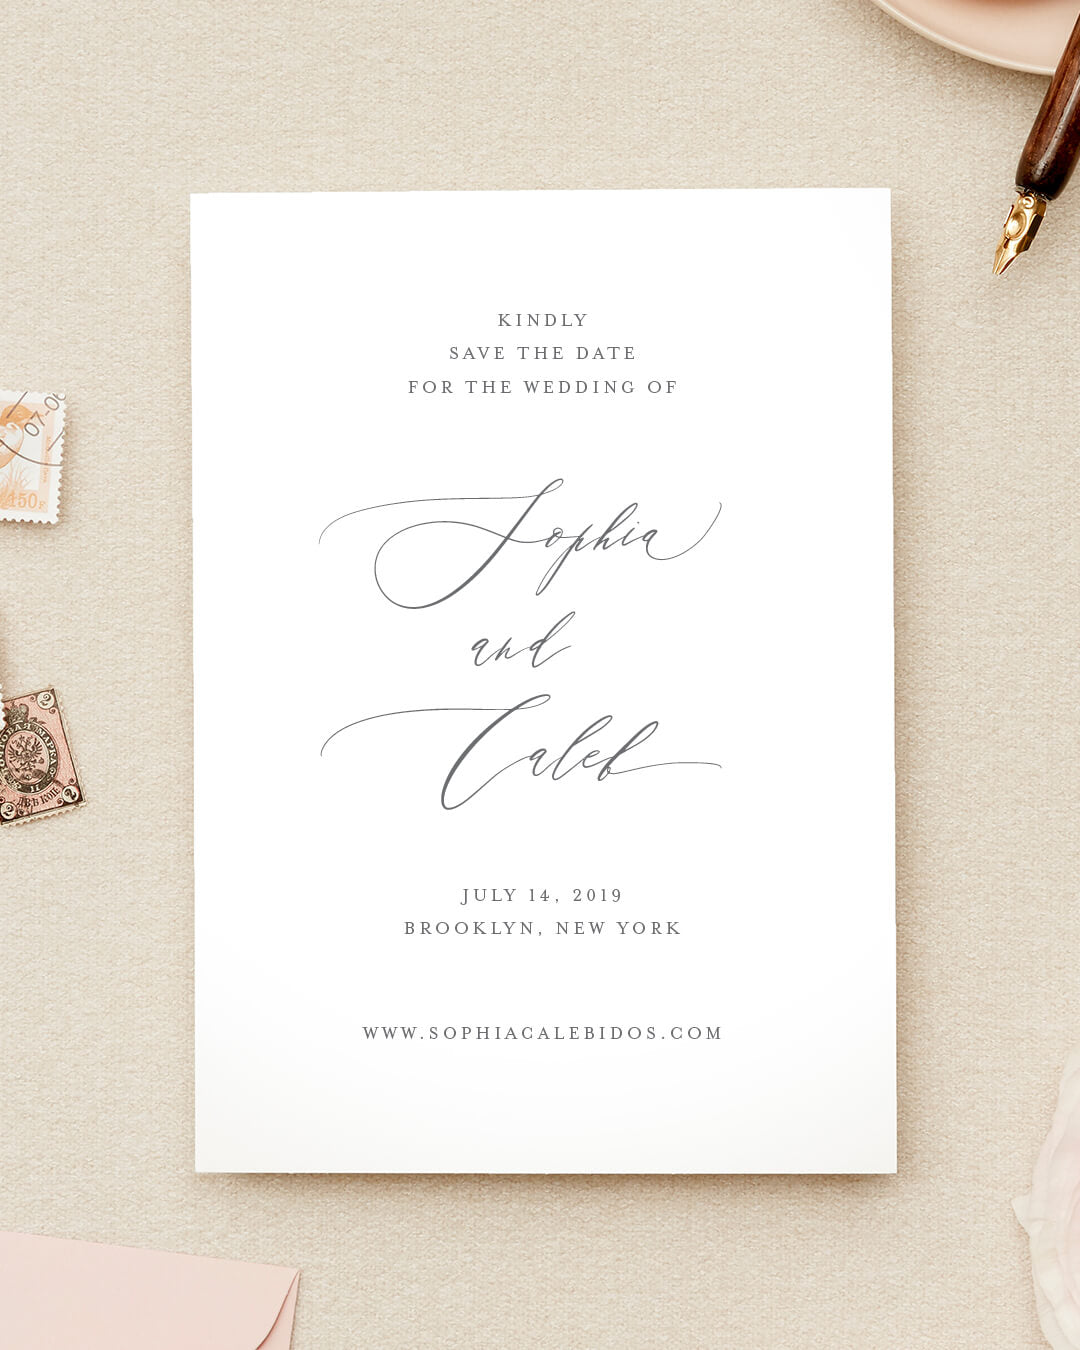 Classy Save The Date | The Sophia